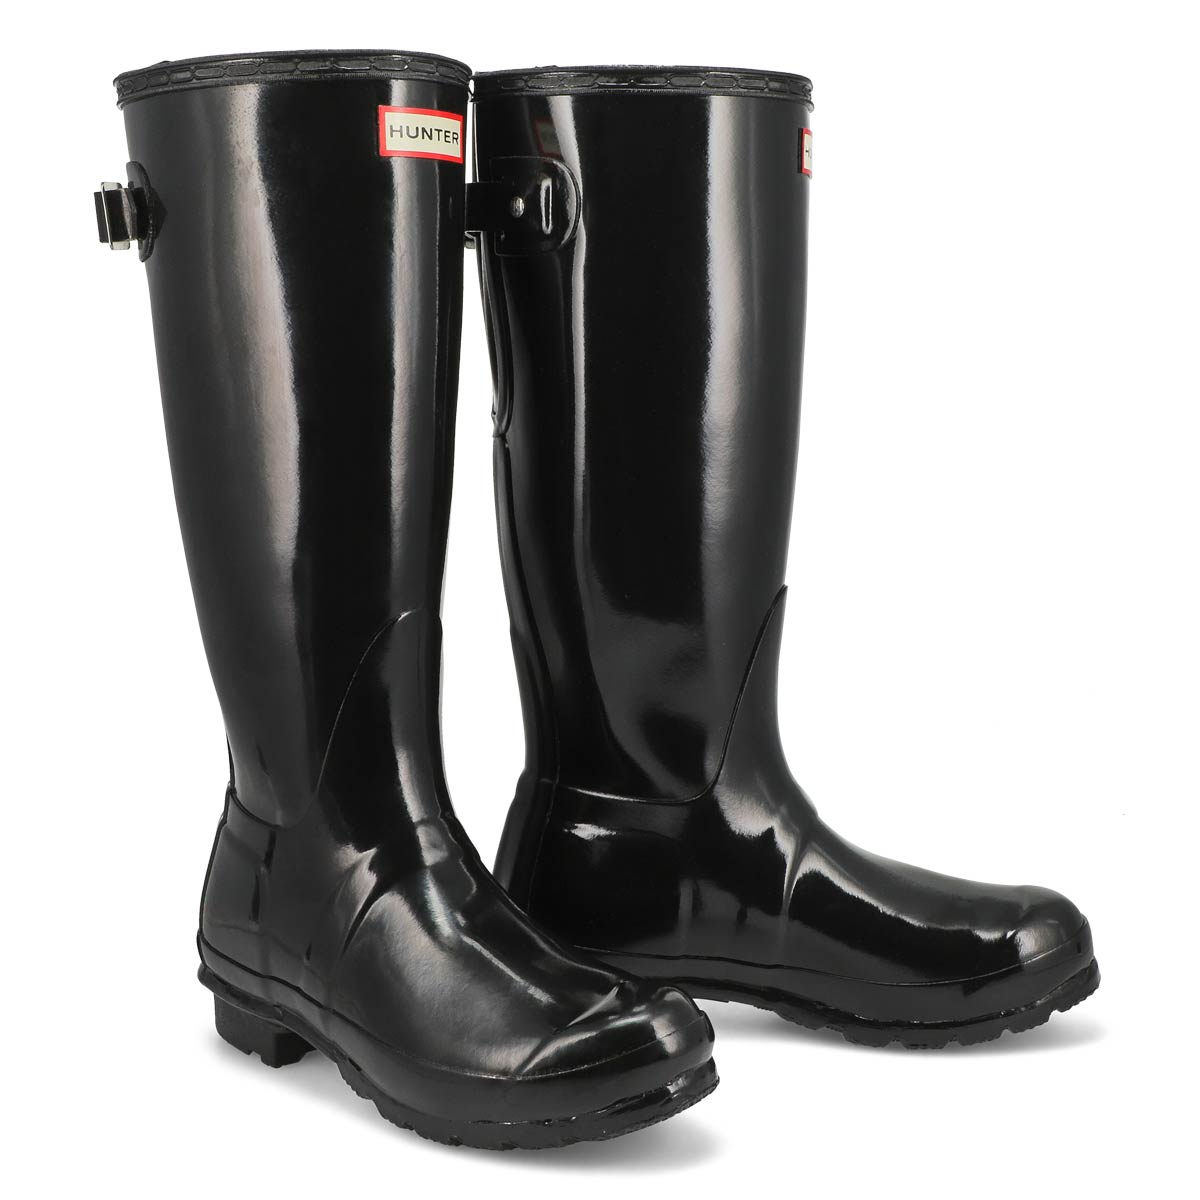 Hunter-Boots-Women-039-s-Original-Back-Adjustable-Gloss-Tall-Rain-Boot